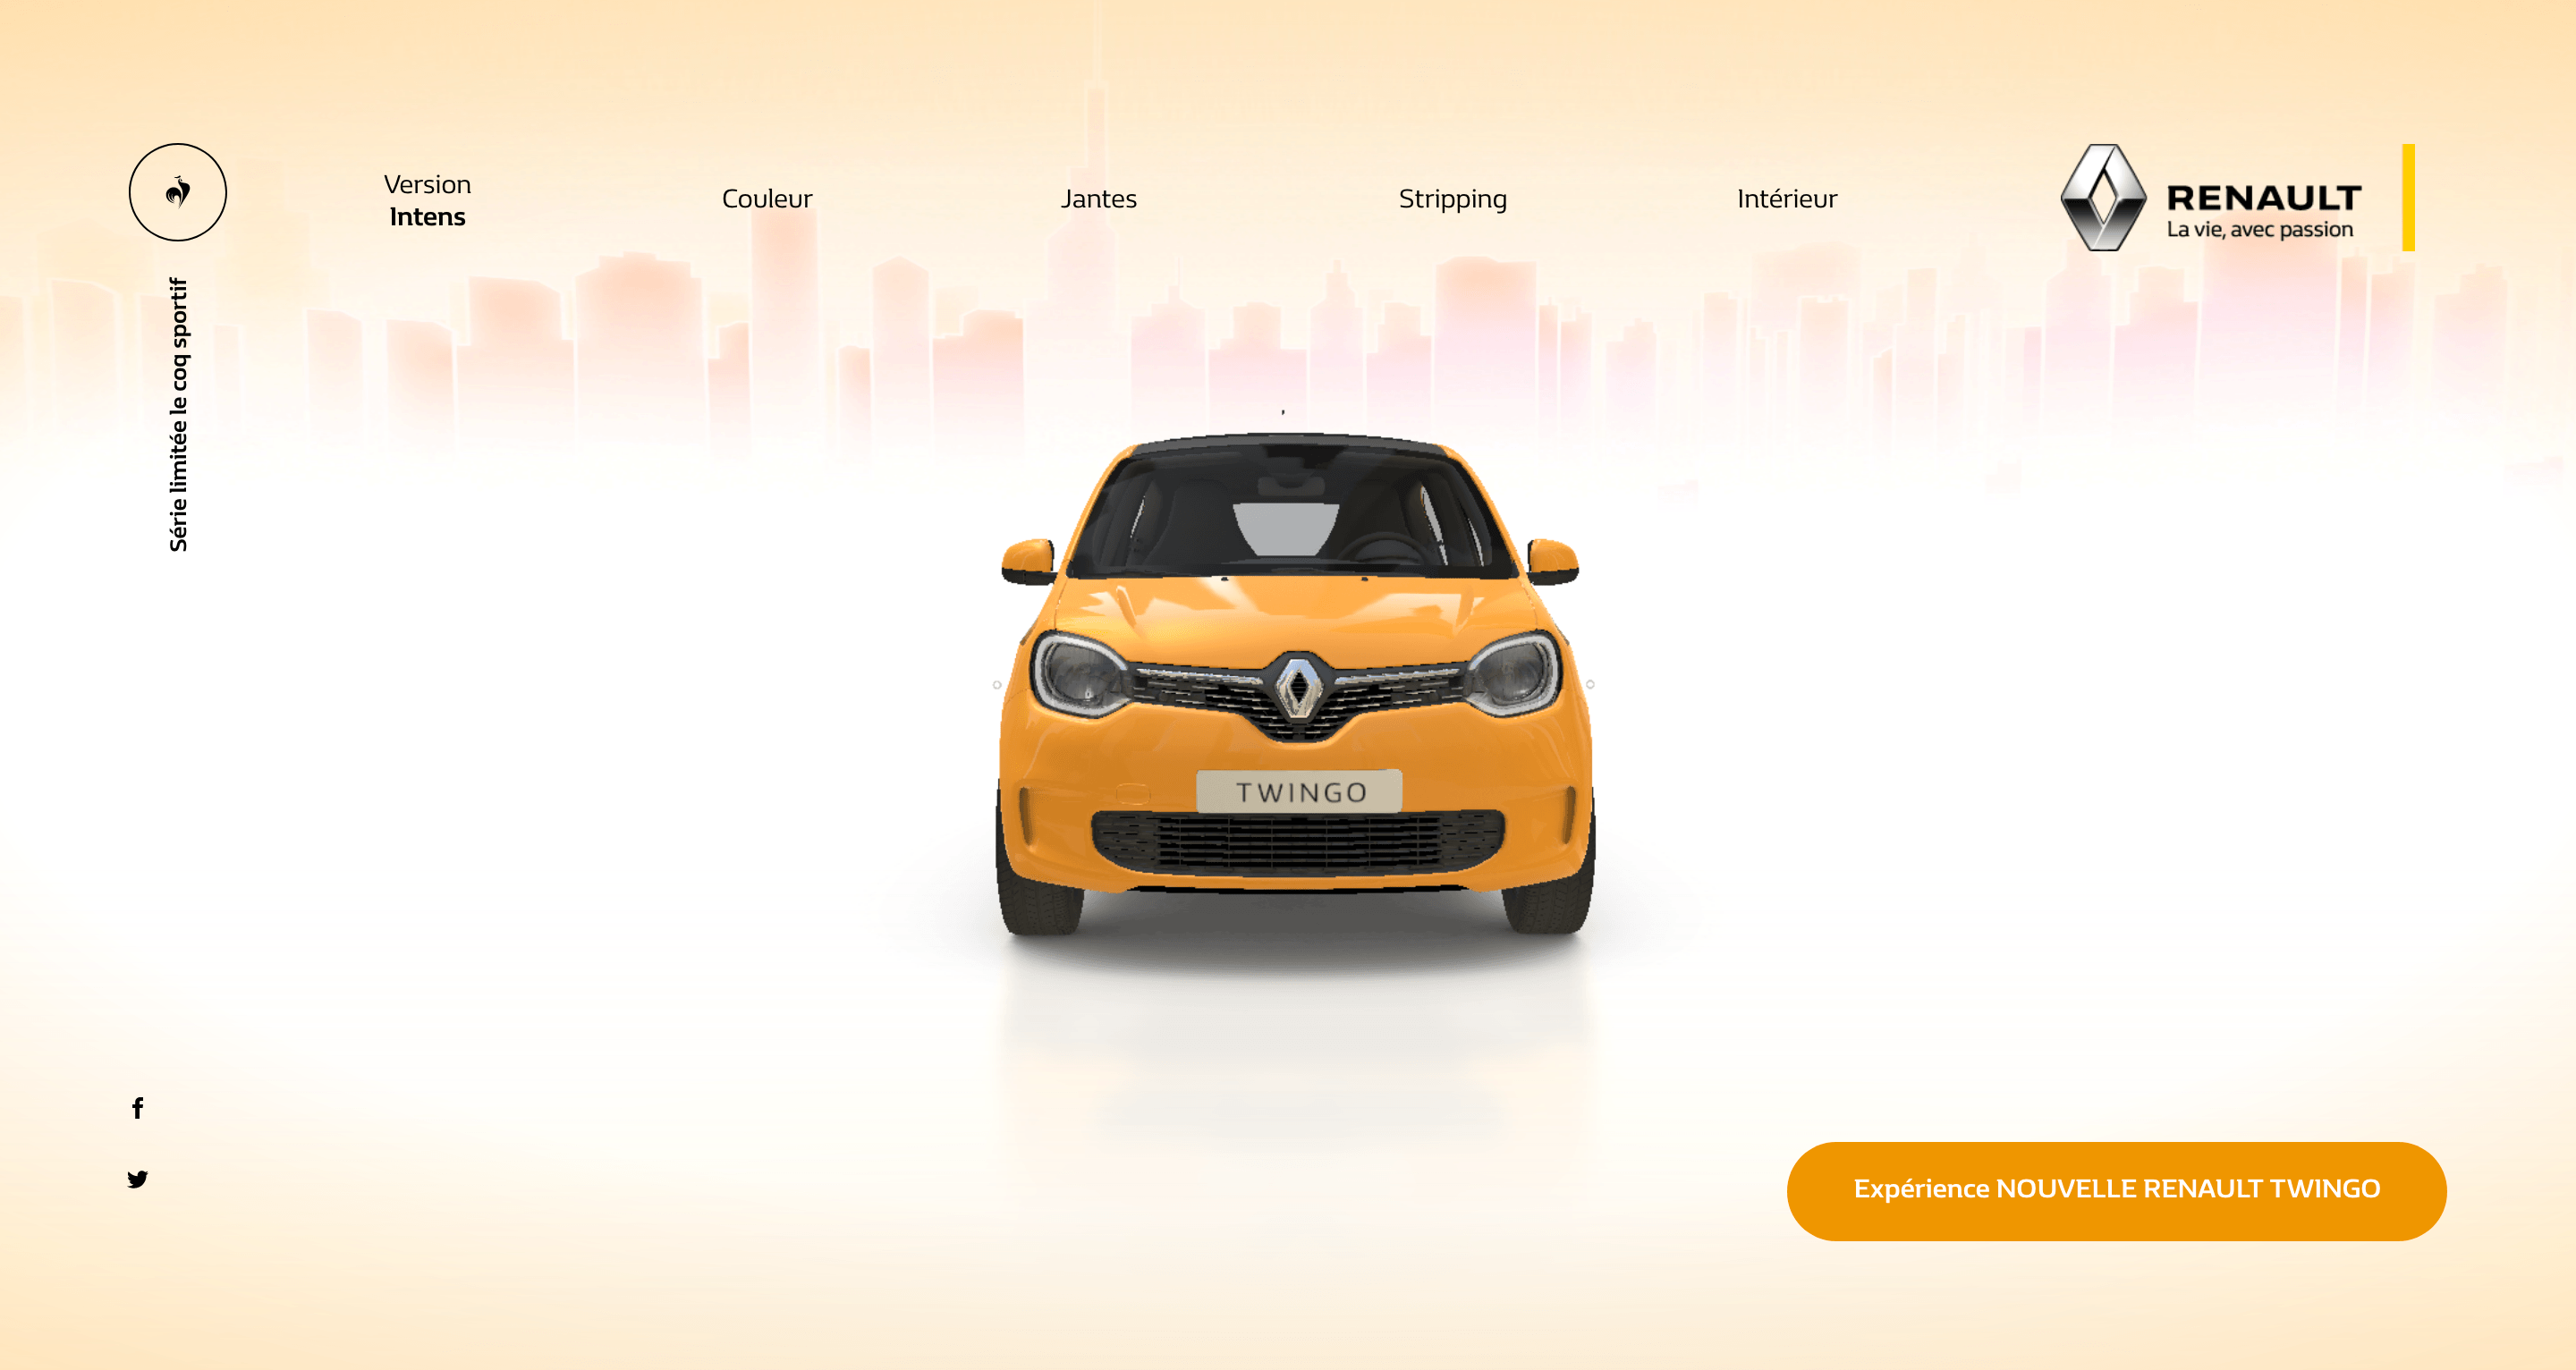 Example of 3D design from The Renault Twingo Experience